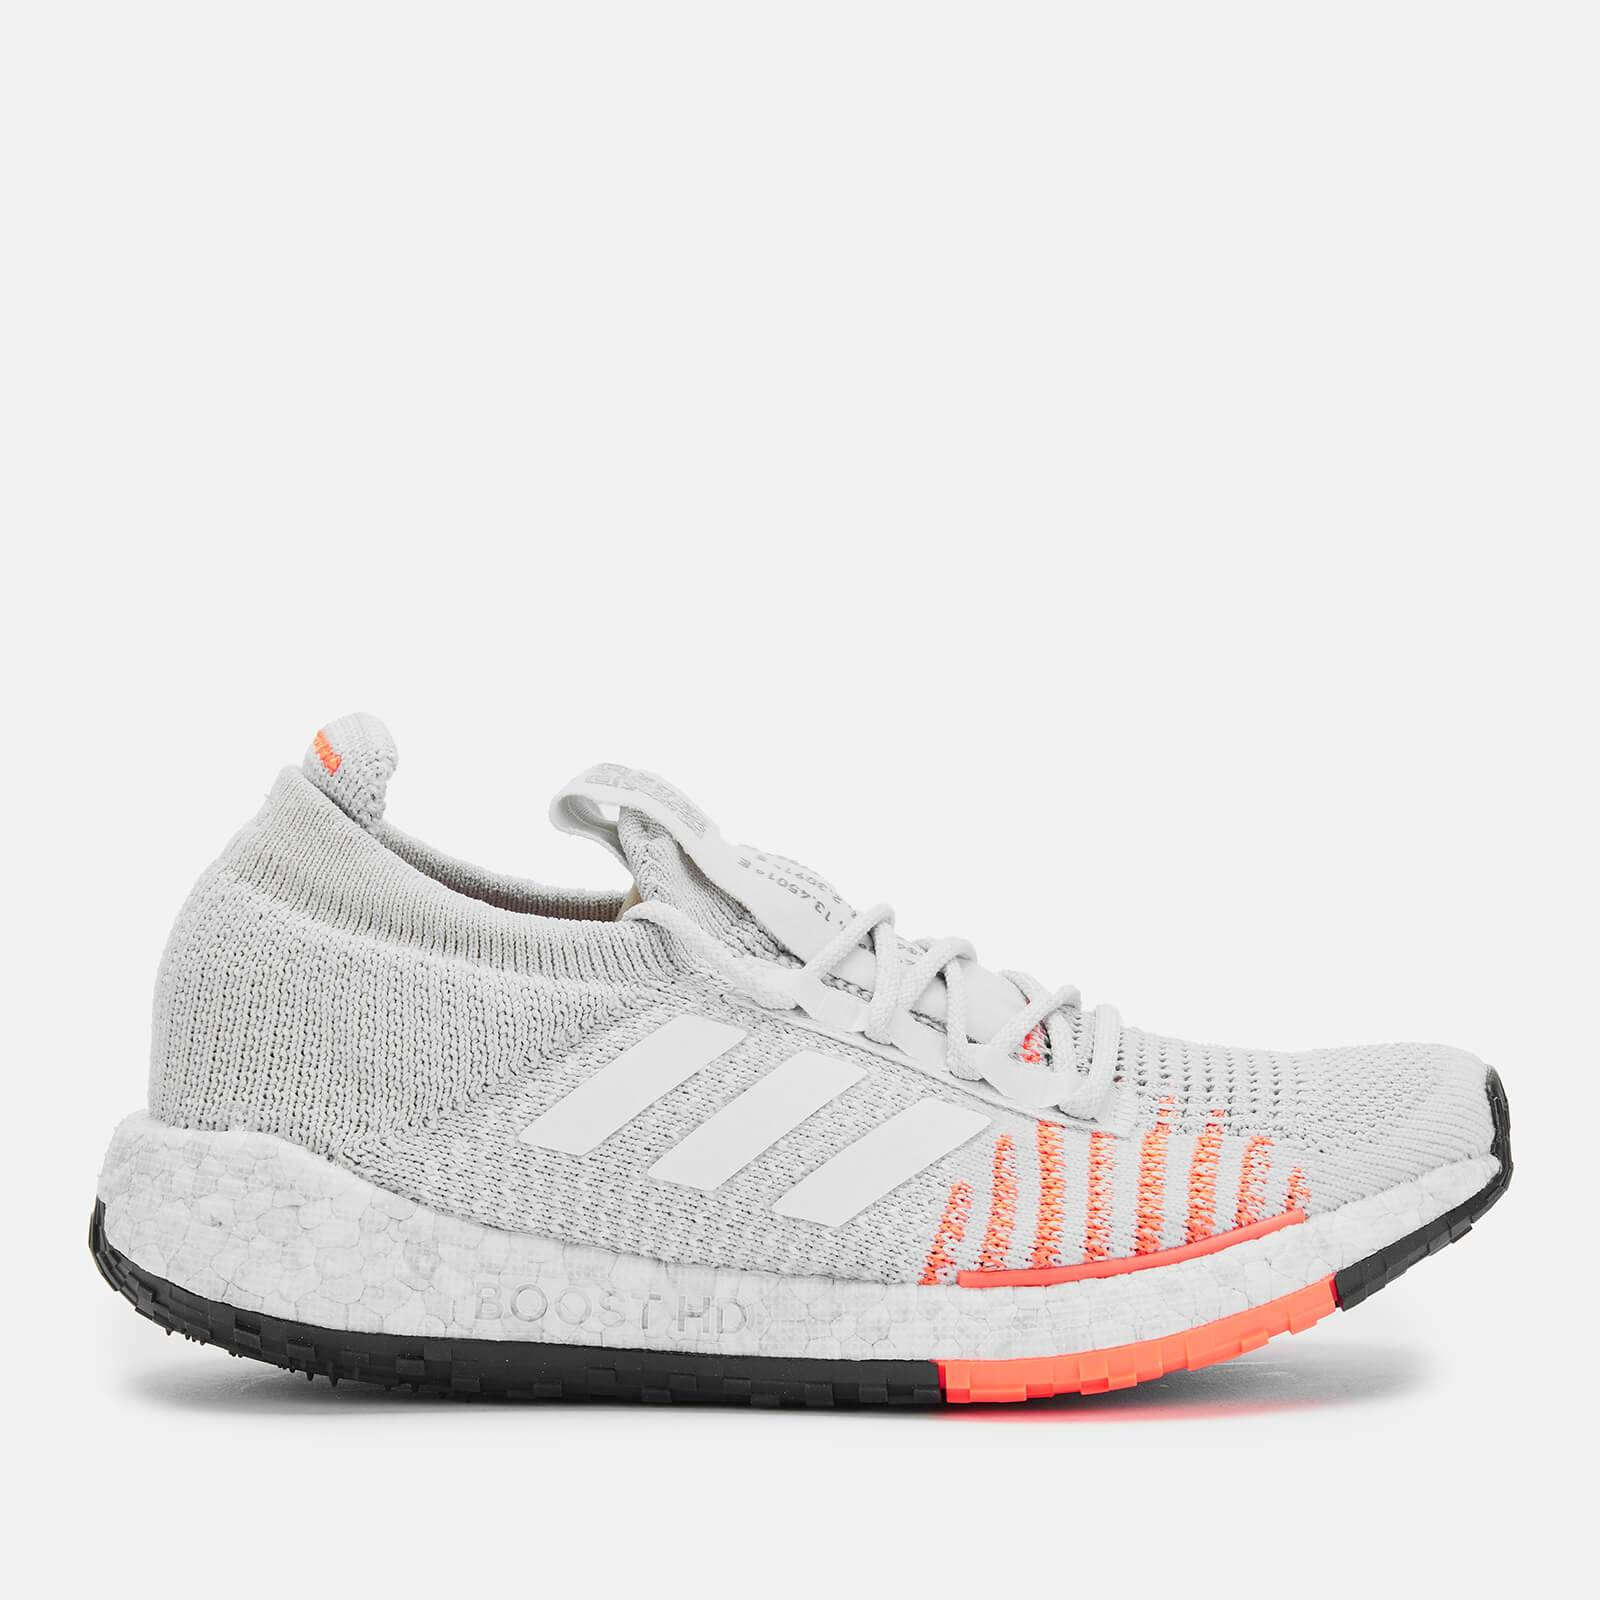 adidas Women's Pulse Boost HD Trainers - Grey/Orange - UK 6 - Grey